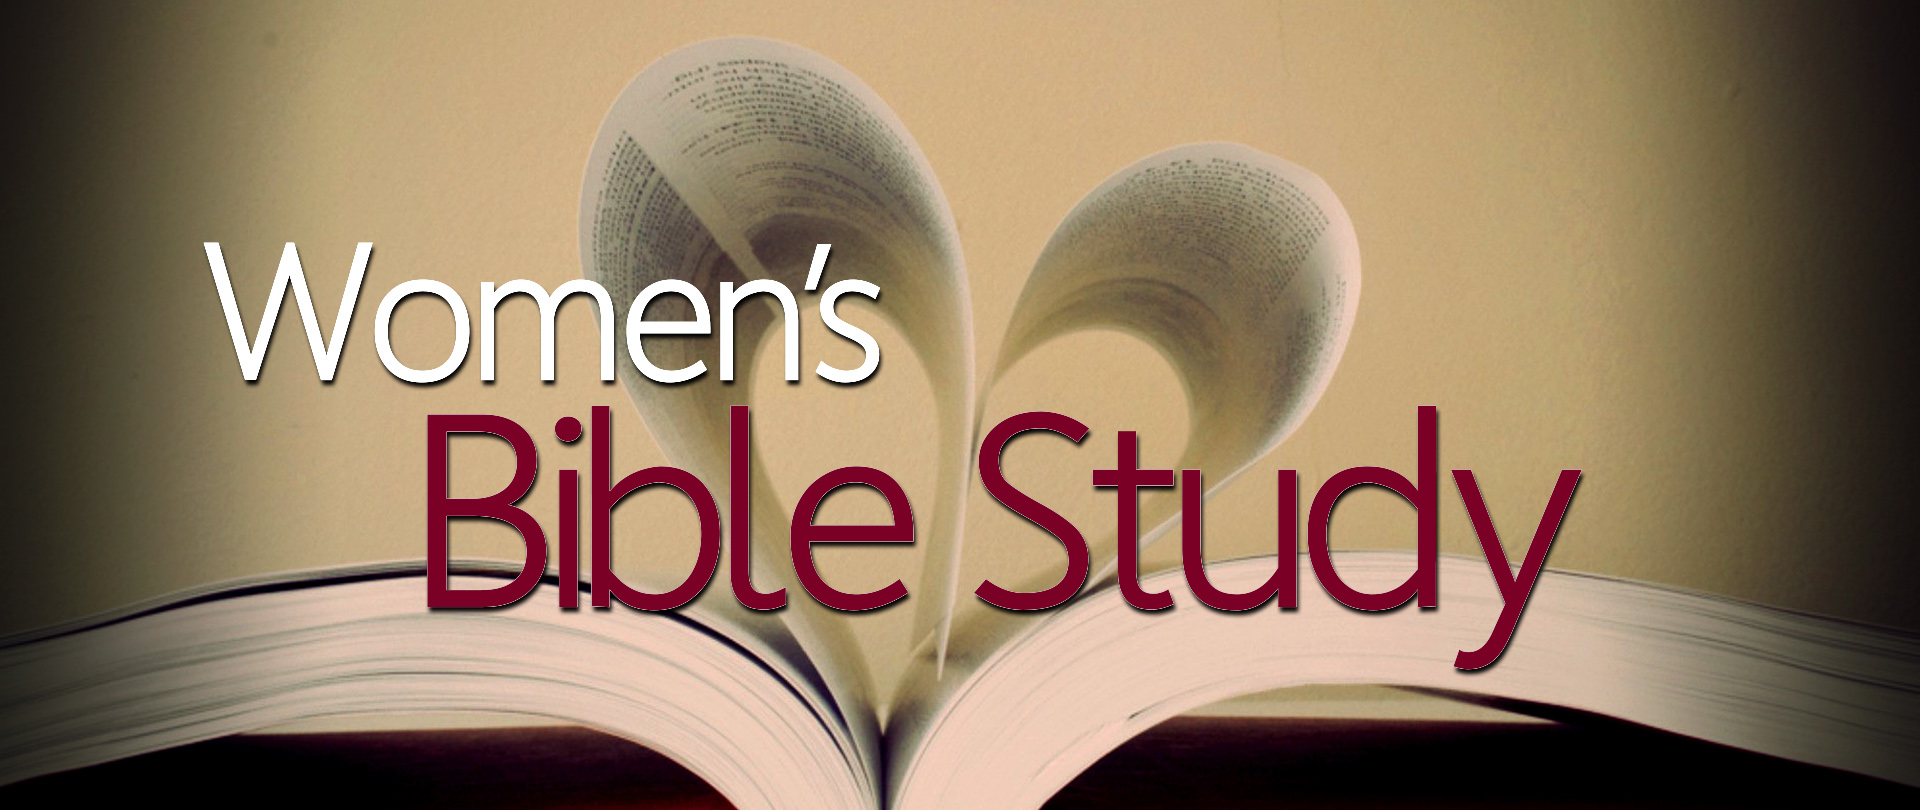 Women's Bible Study - Cambridge Methodist Church